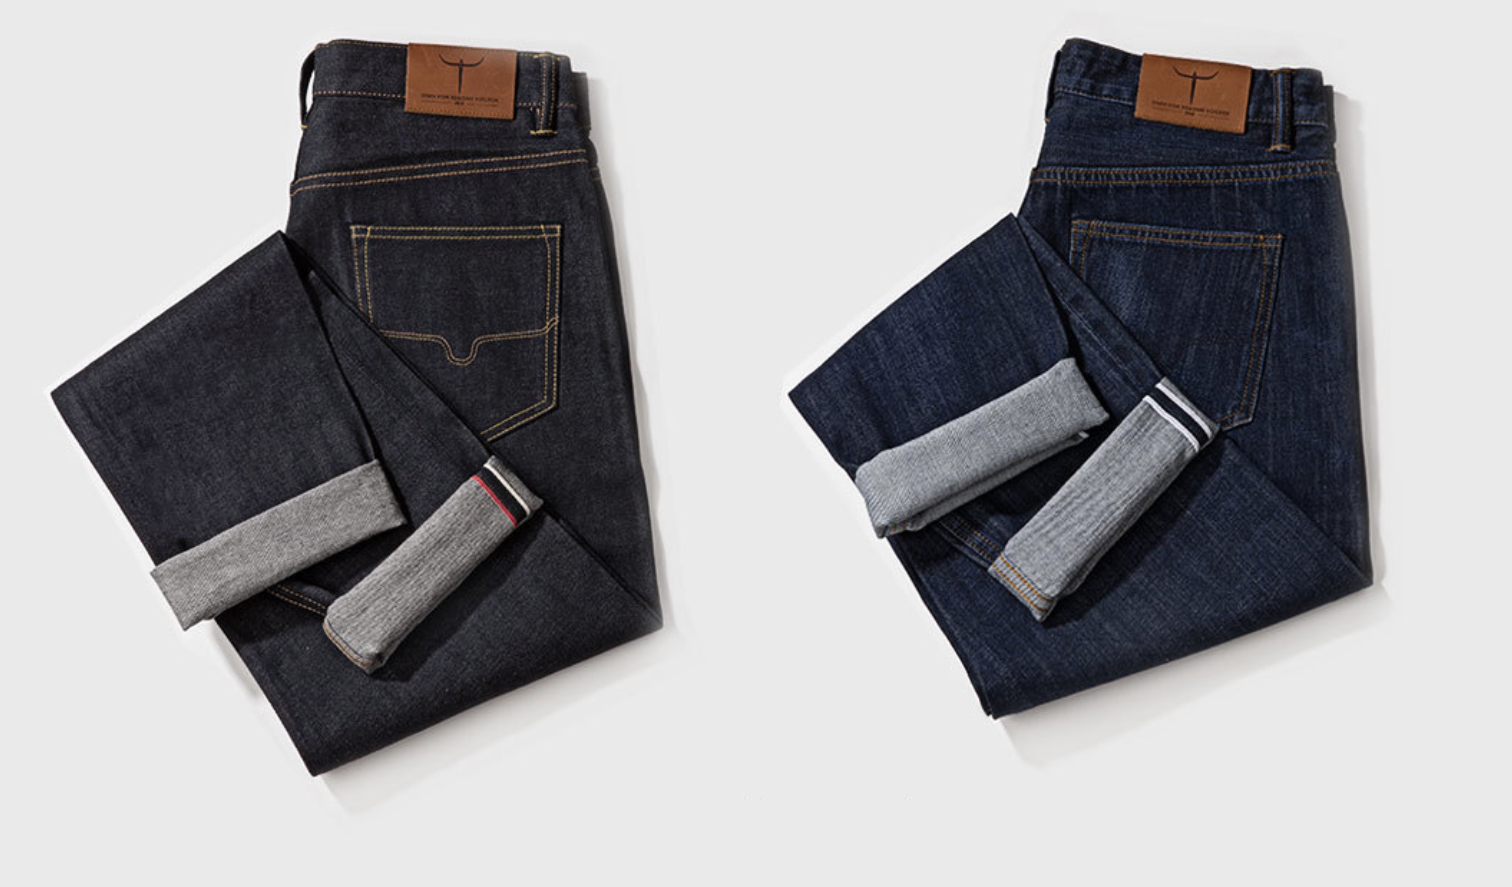 Xiaomi introduces more jeans